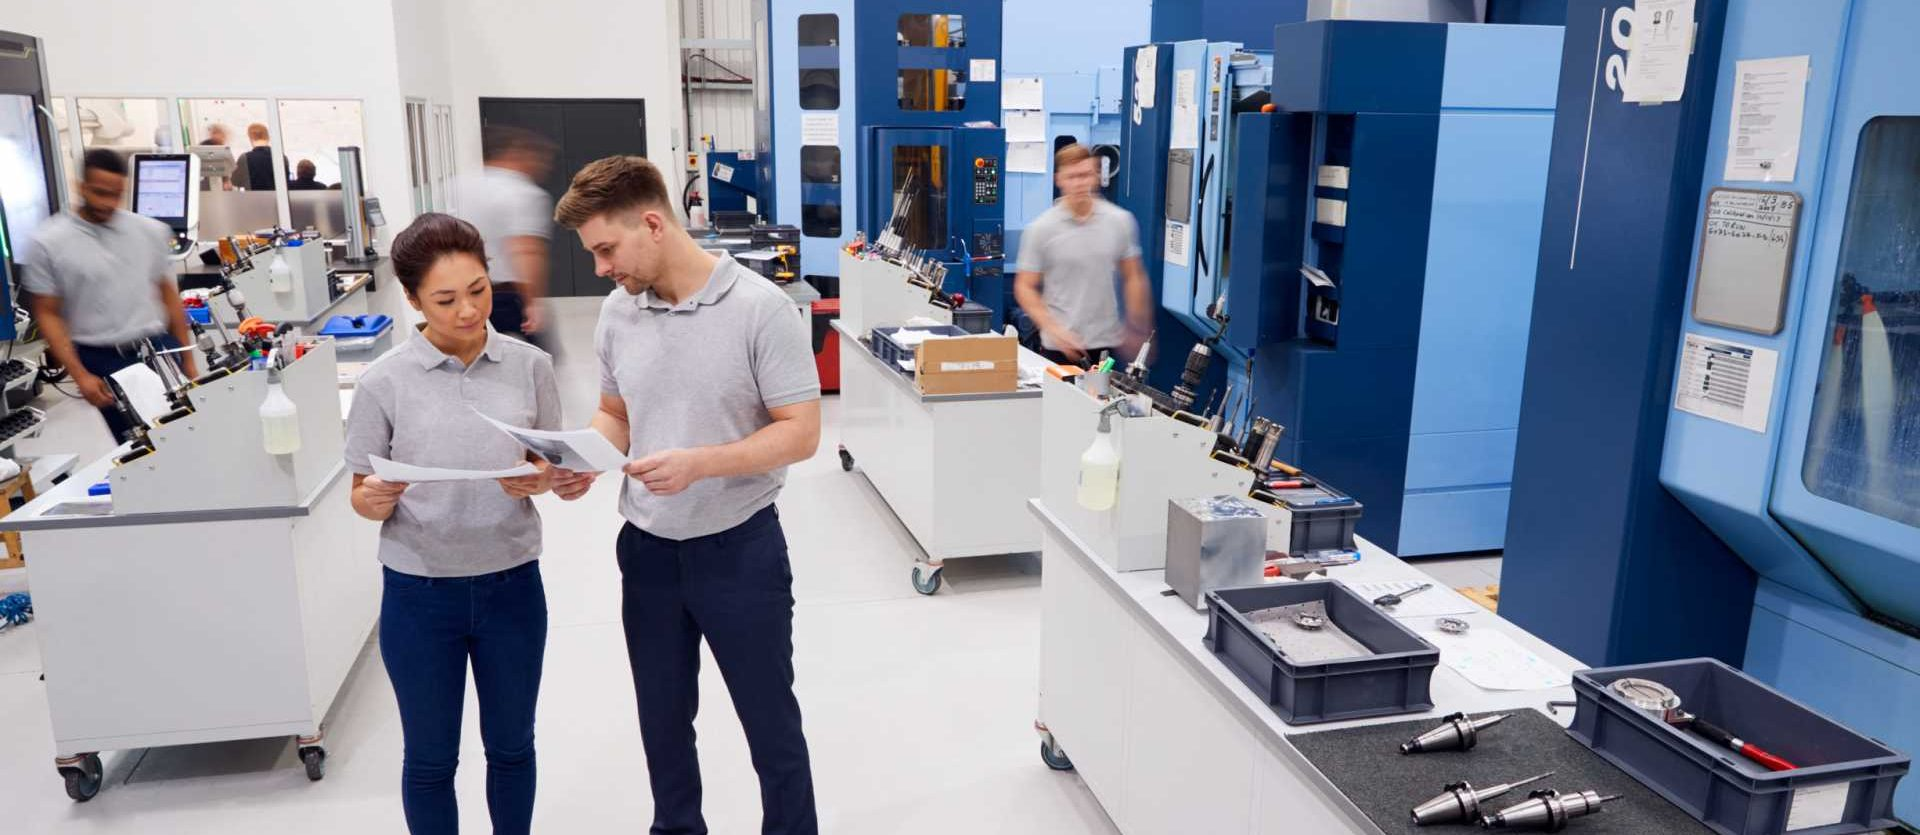 contract manufacturing = Engineers Meeting On Factory Floor Of Busy Engineering Workshop - shutterstock_1067929811